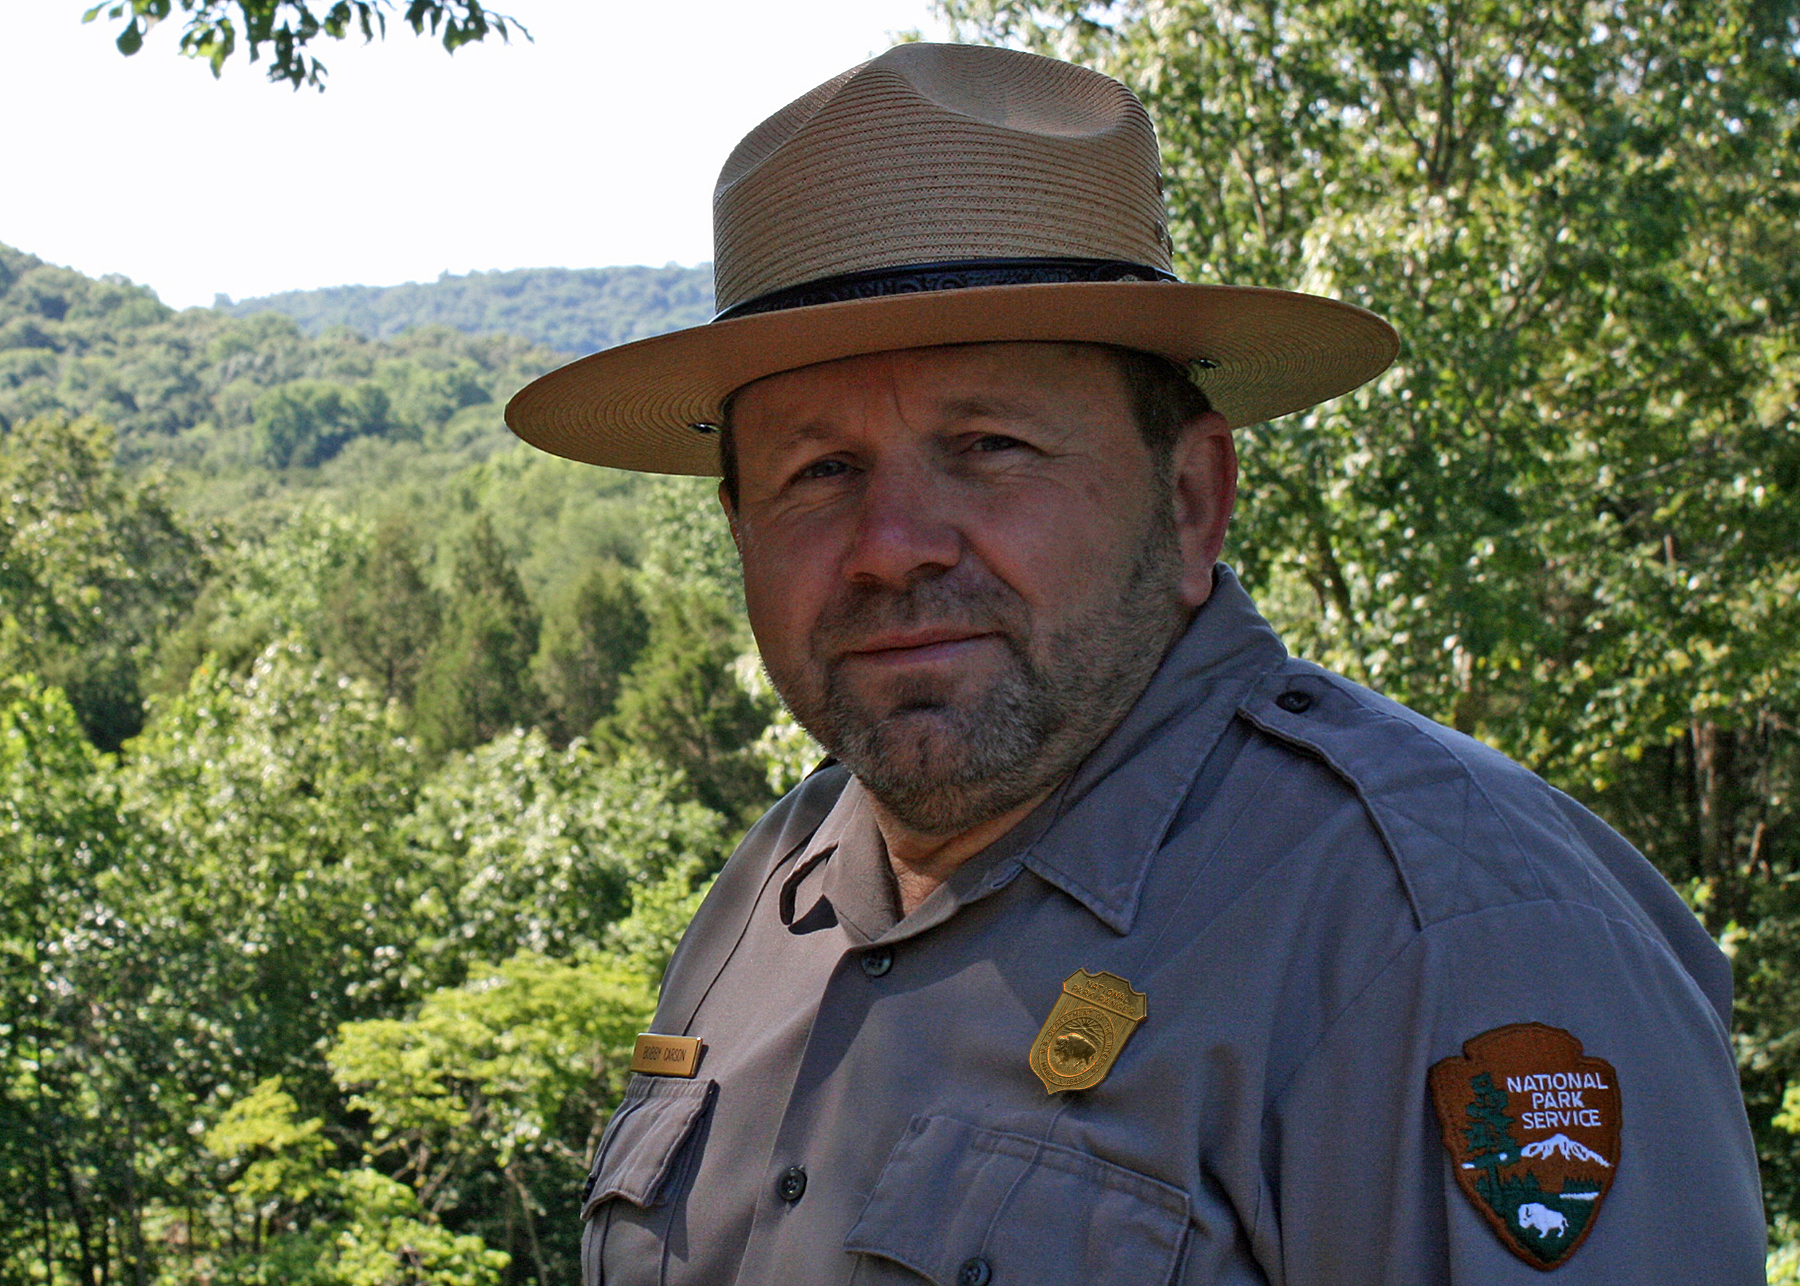 Bobby Carson, Mammoth Cave National Park Chief of Science and Resource Management